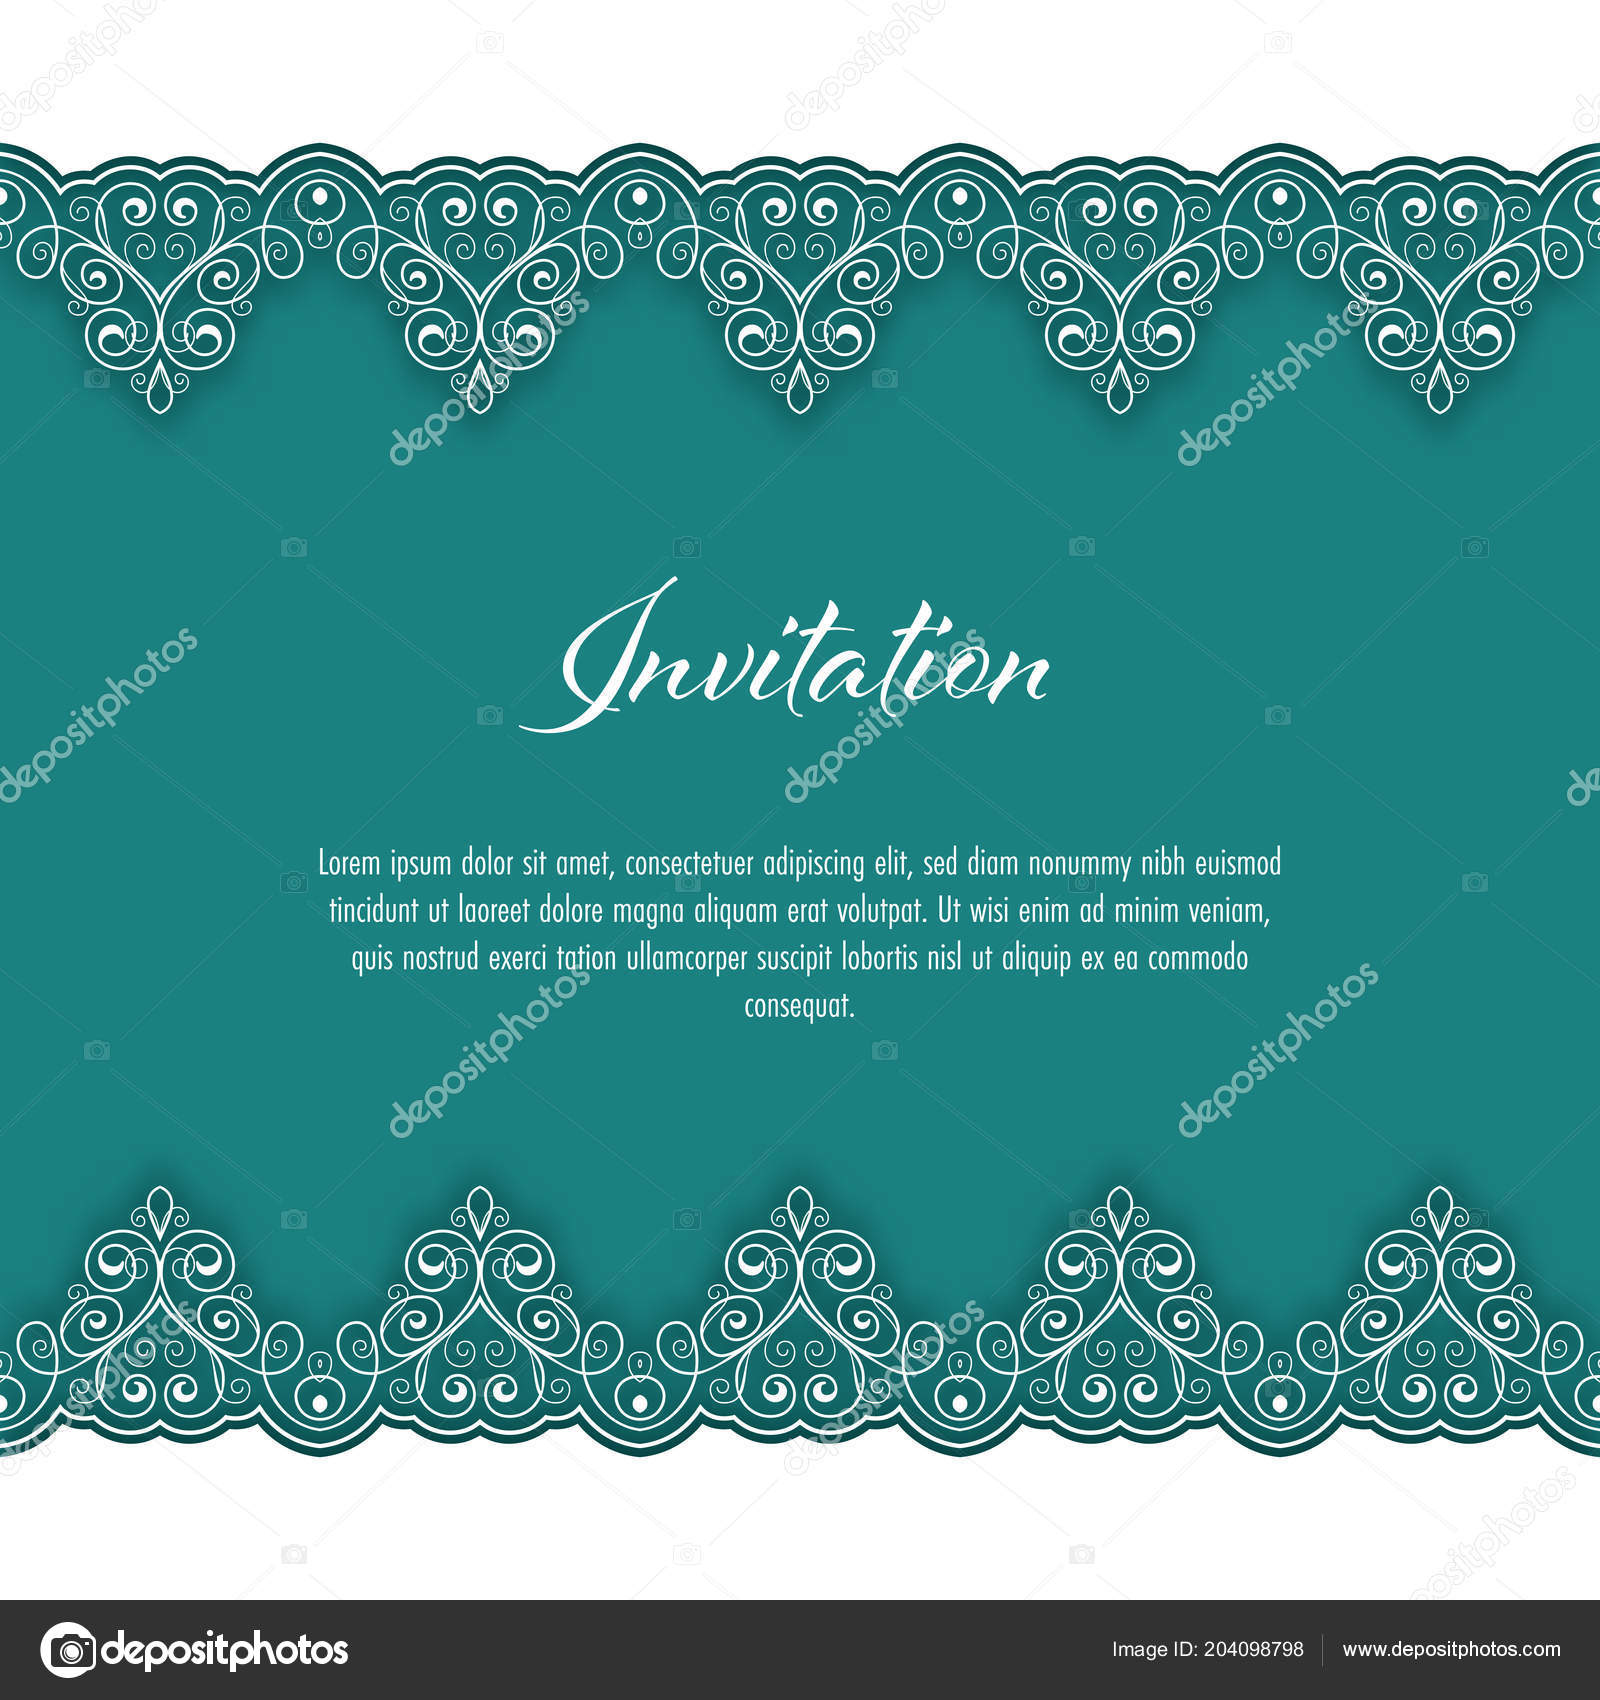 Vintage background lace border greeting card wedding invitation vintage background lace border greeting card wedding invitation vector illustration vetor de stock stopboris Images